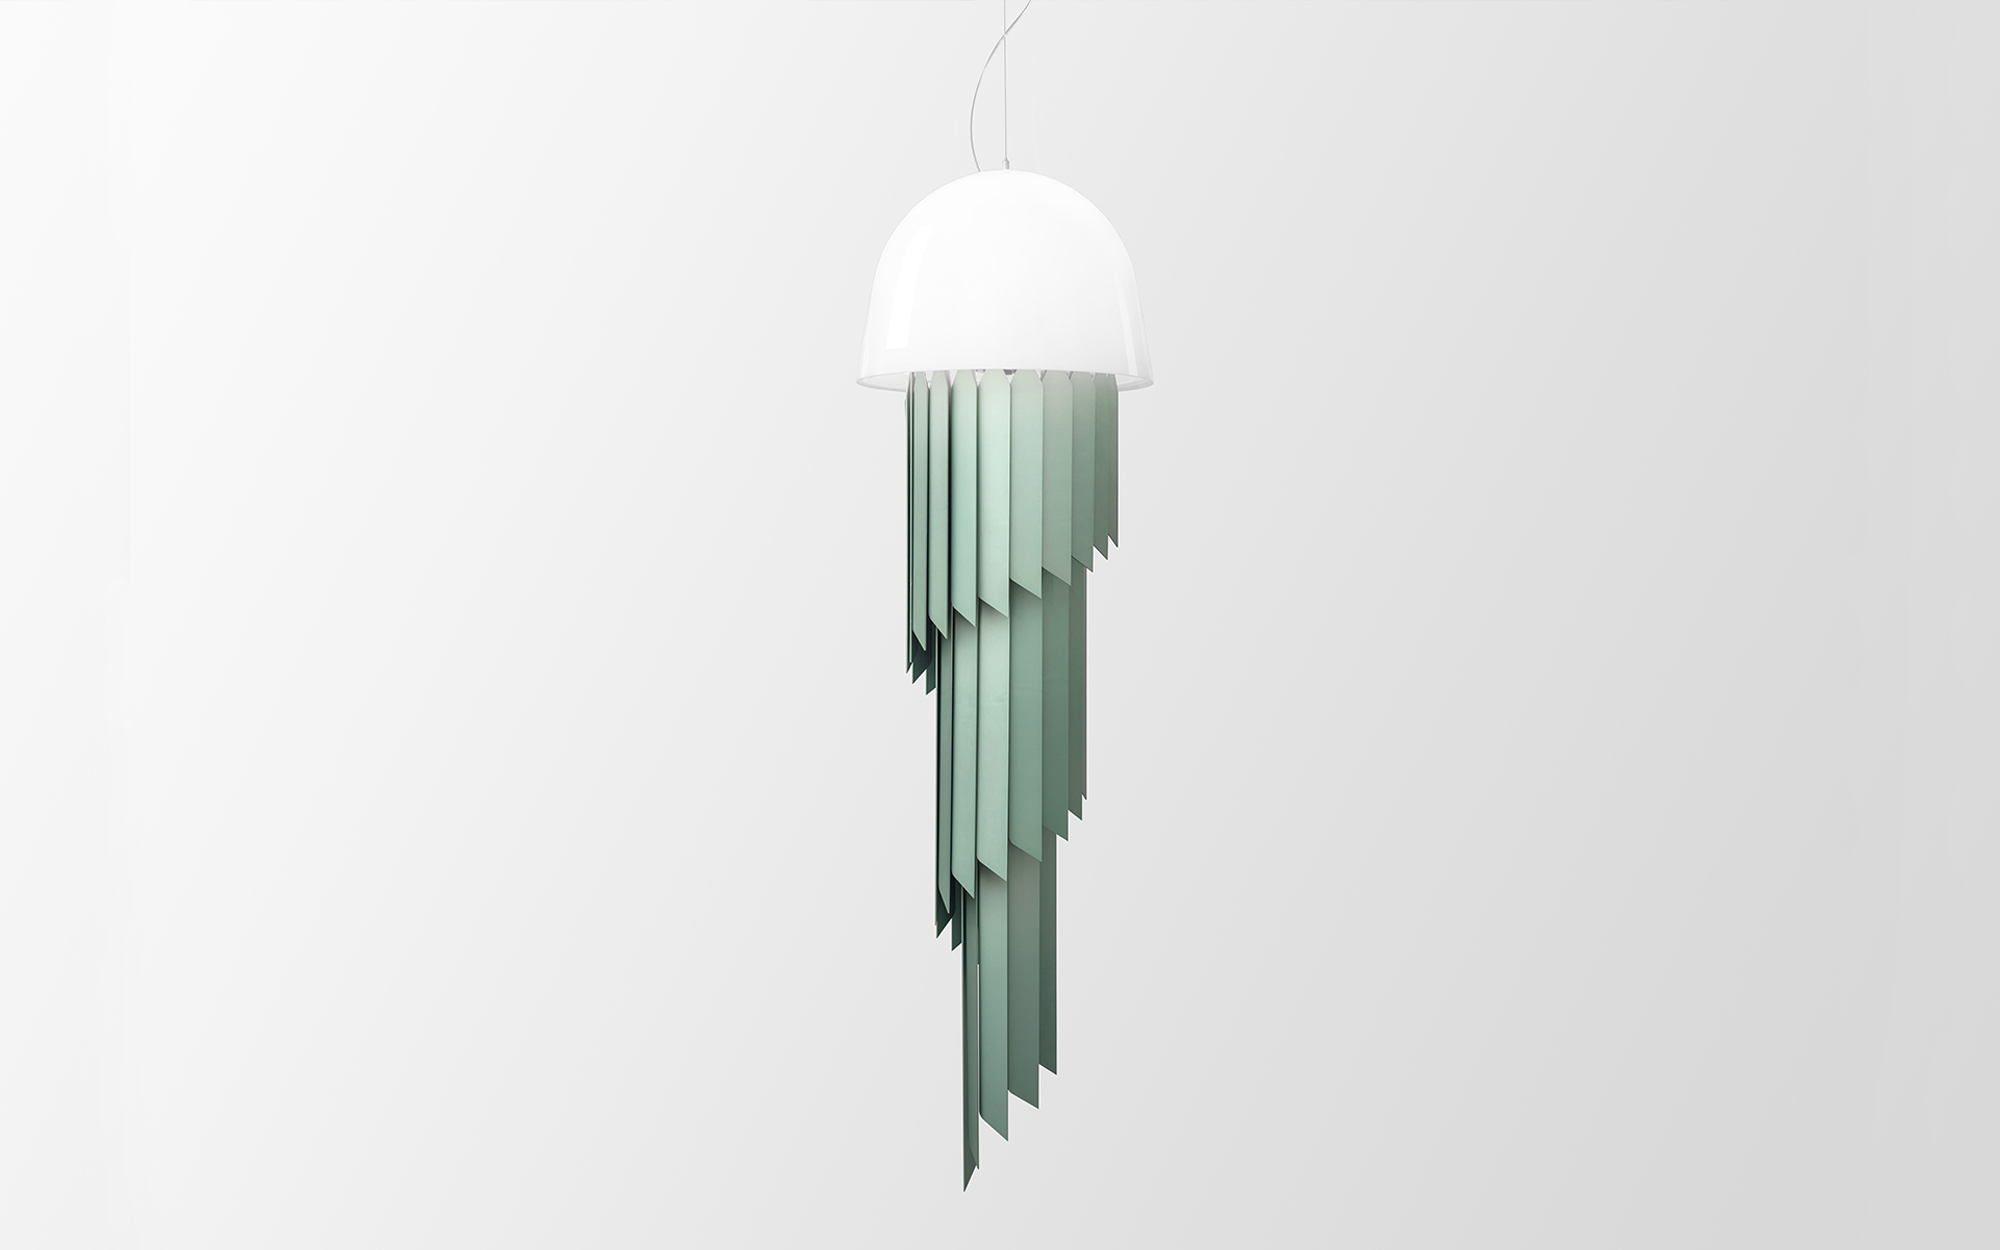 Jean-Baptiste Fastrez Jellyfish ceiling light